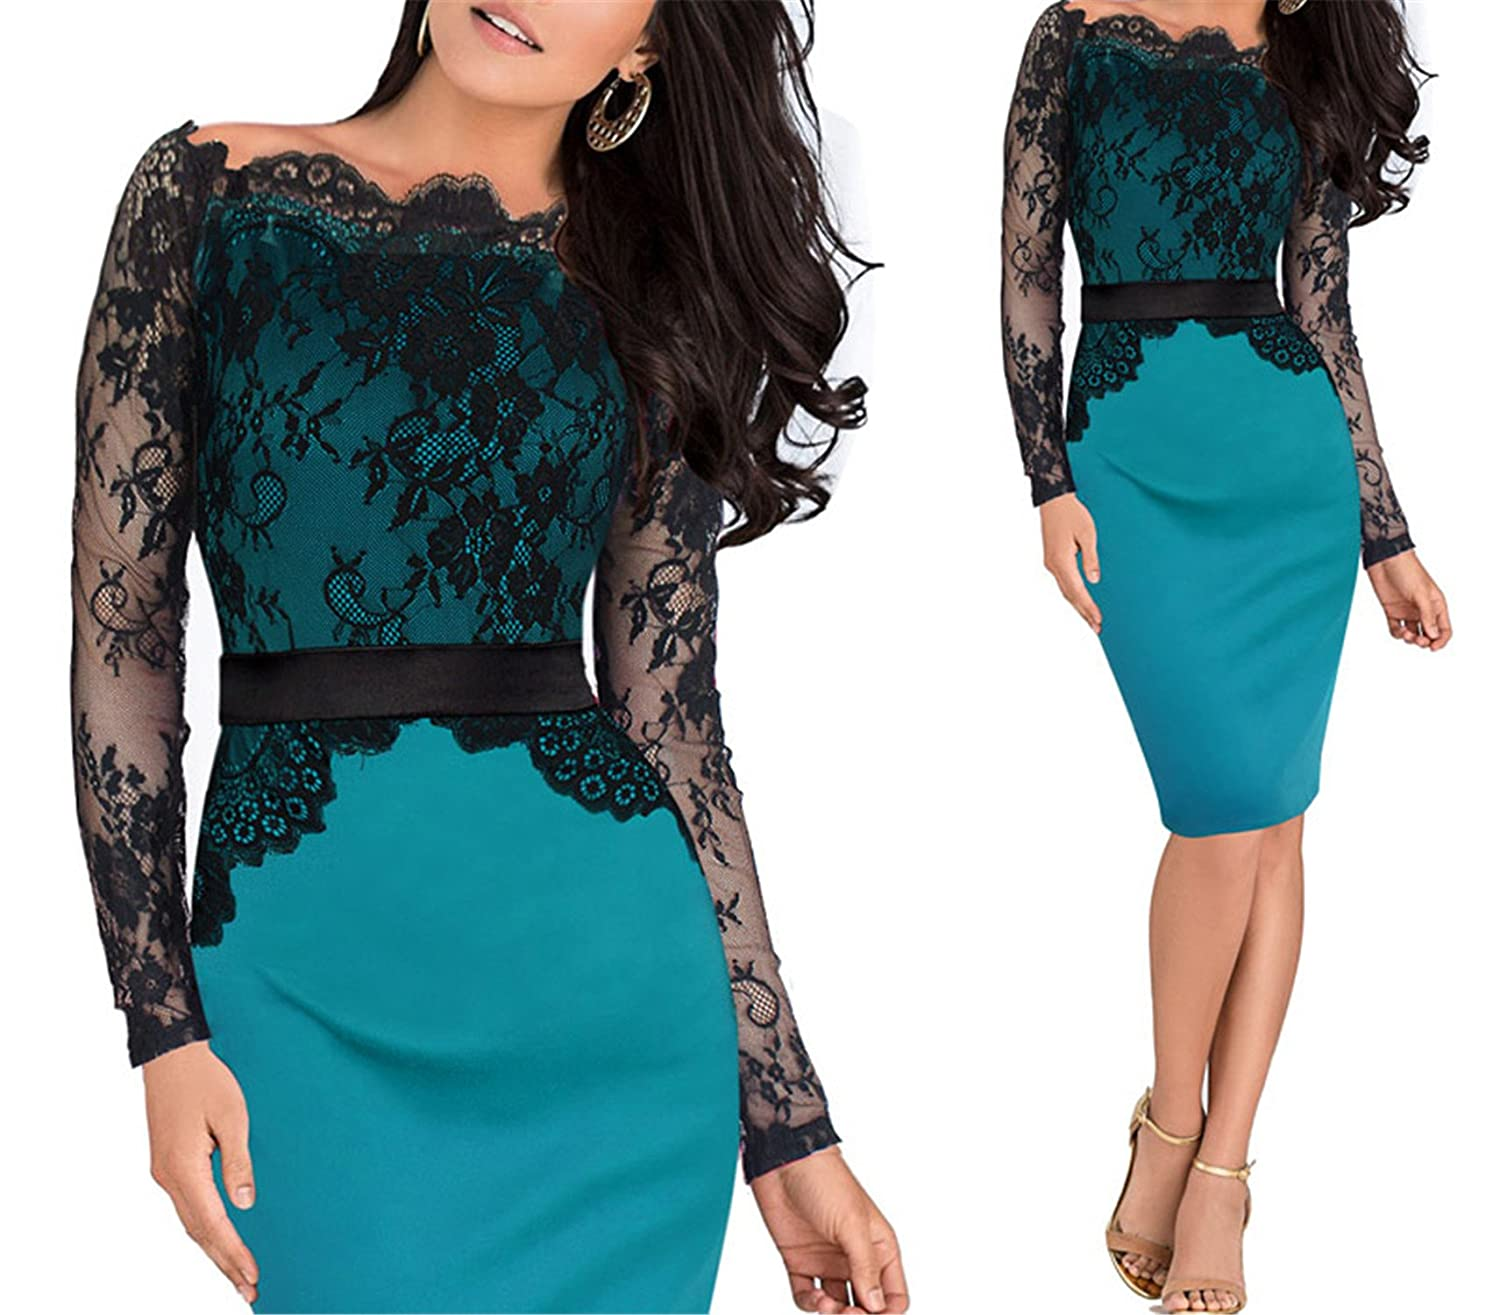 Green Elegant Pinup Vintage Retro Lace Off Shoulder Patchwork Belted Stretch colorblock Bodycon Party Fitted Dress 719